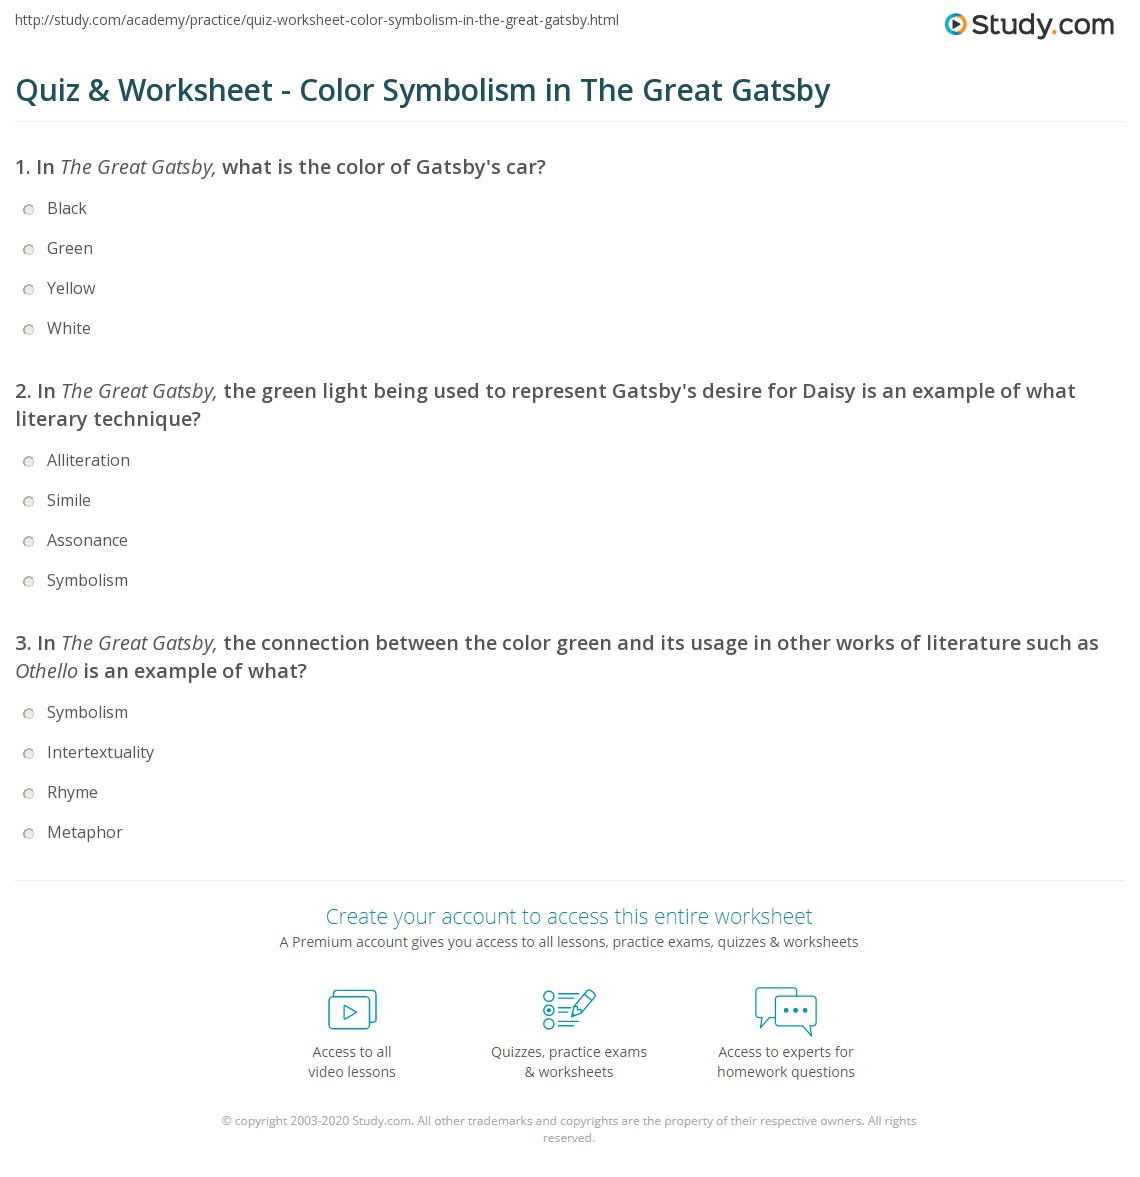 Quiz Worksheet Color Symbolism In The Great Gatsby Study